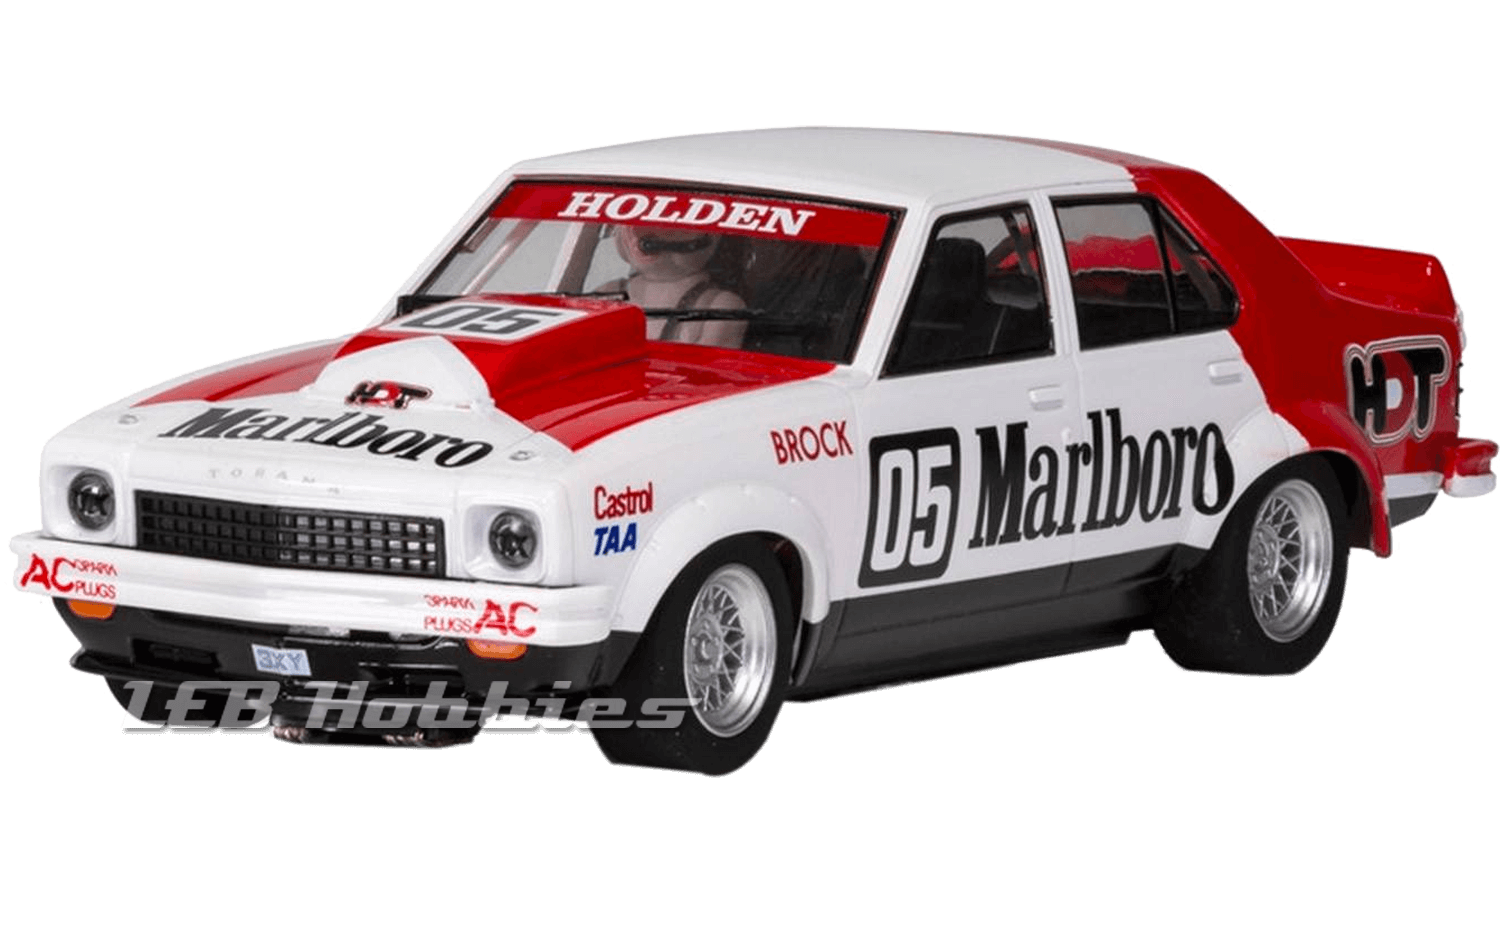 C3927 Scalextric Holden A9X Torana-Sandown 1978, Peter Brock #5